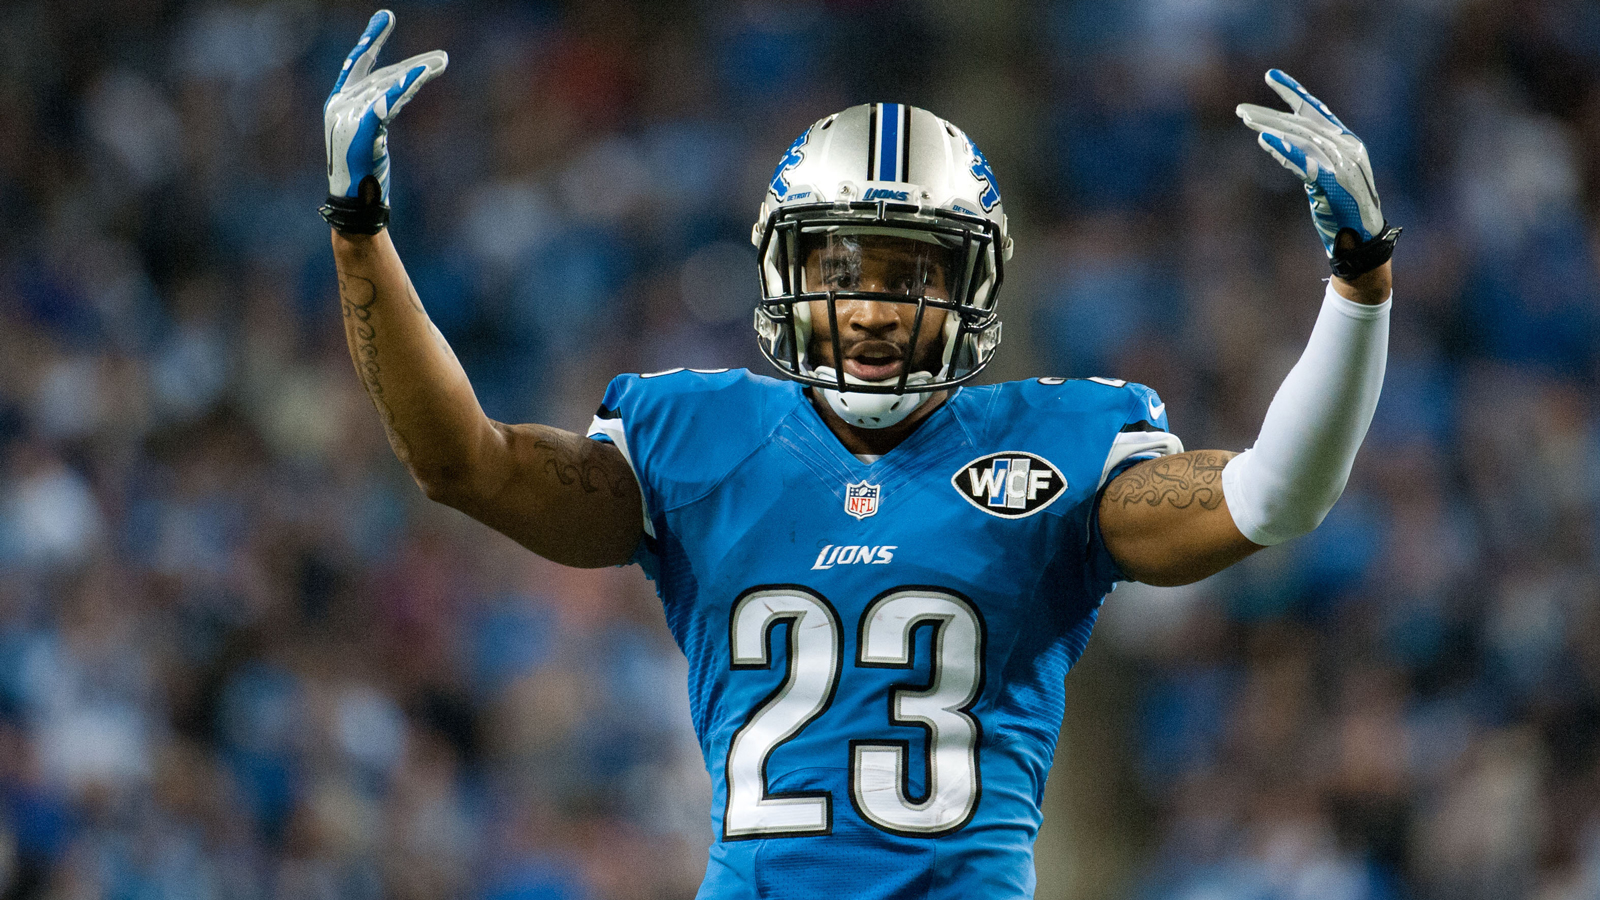 Five things we learned about the Lions this preseason